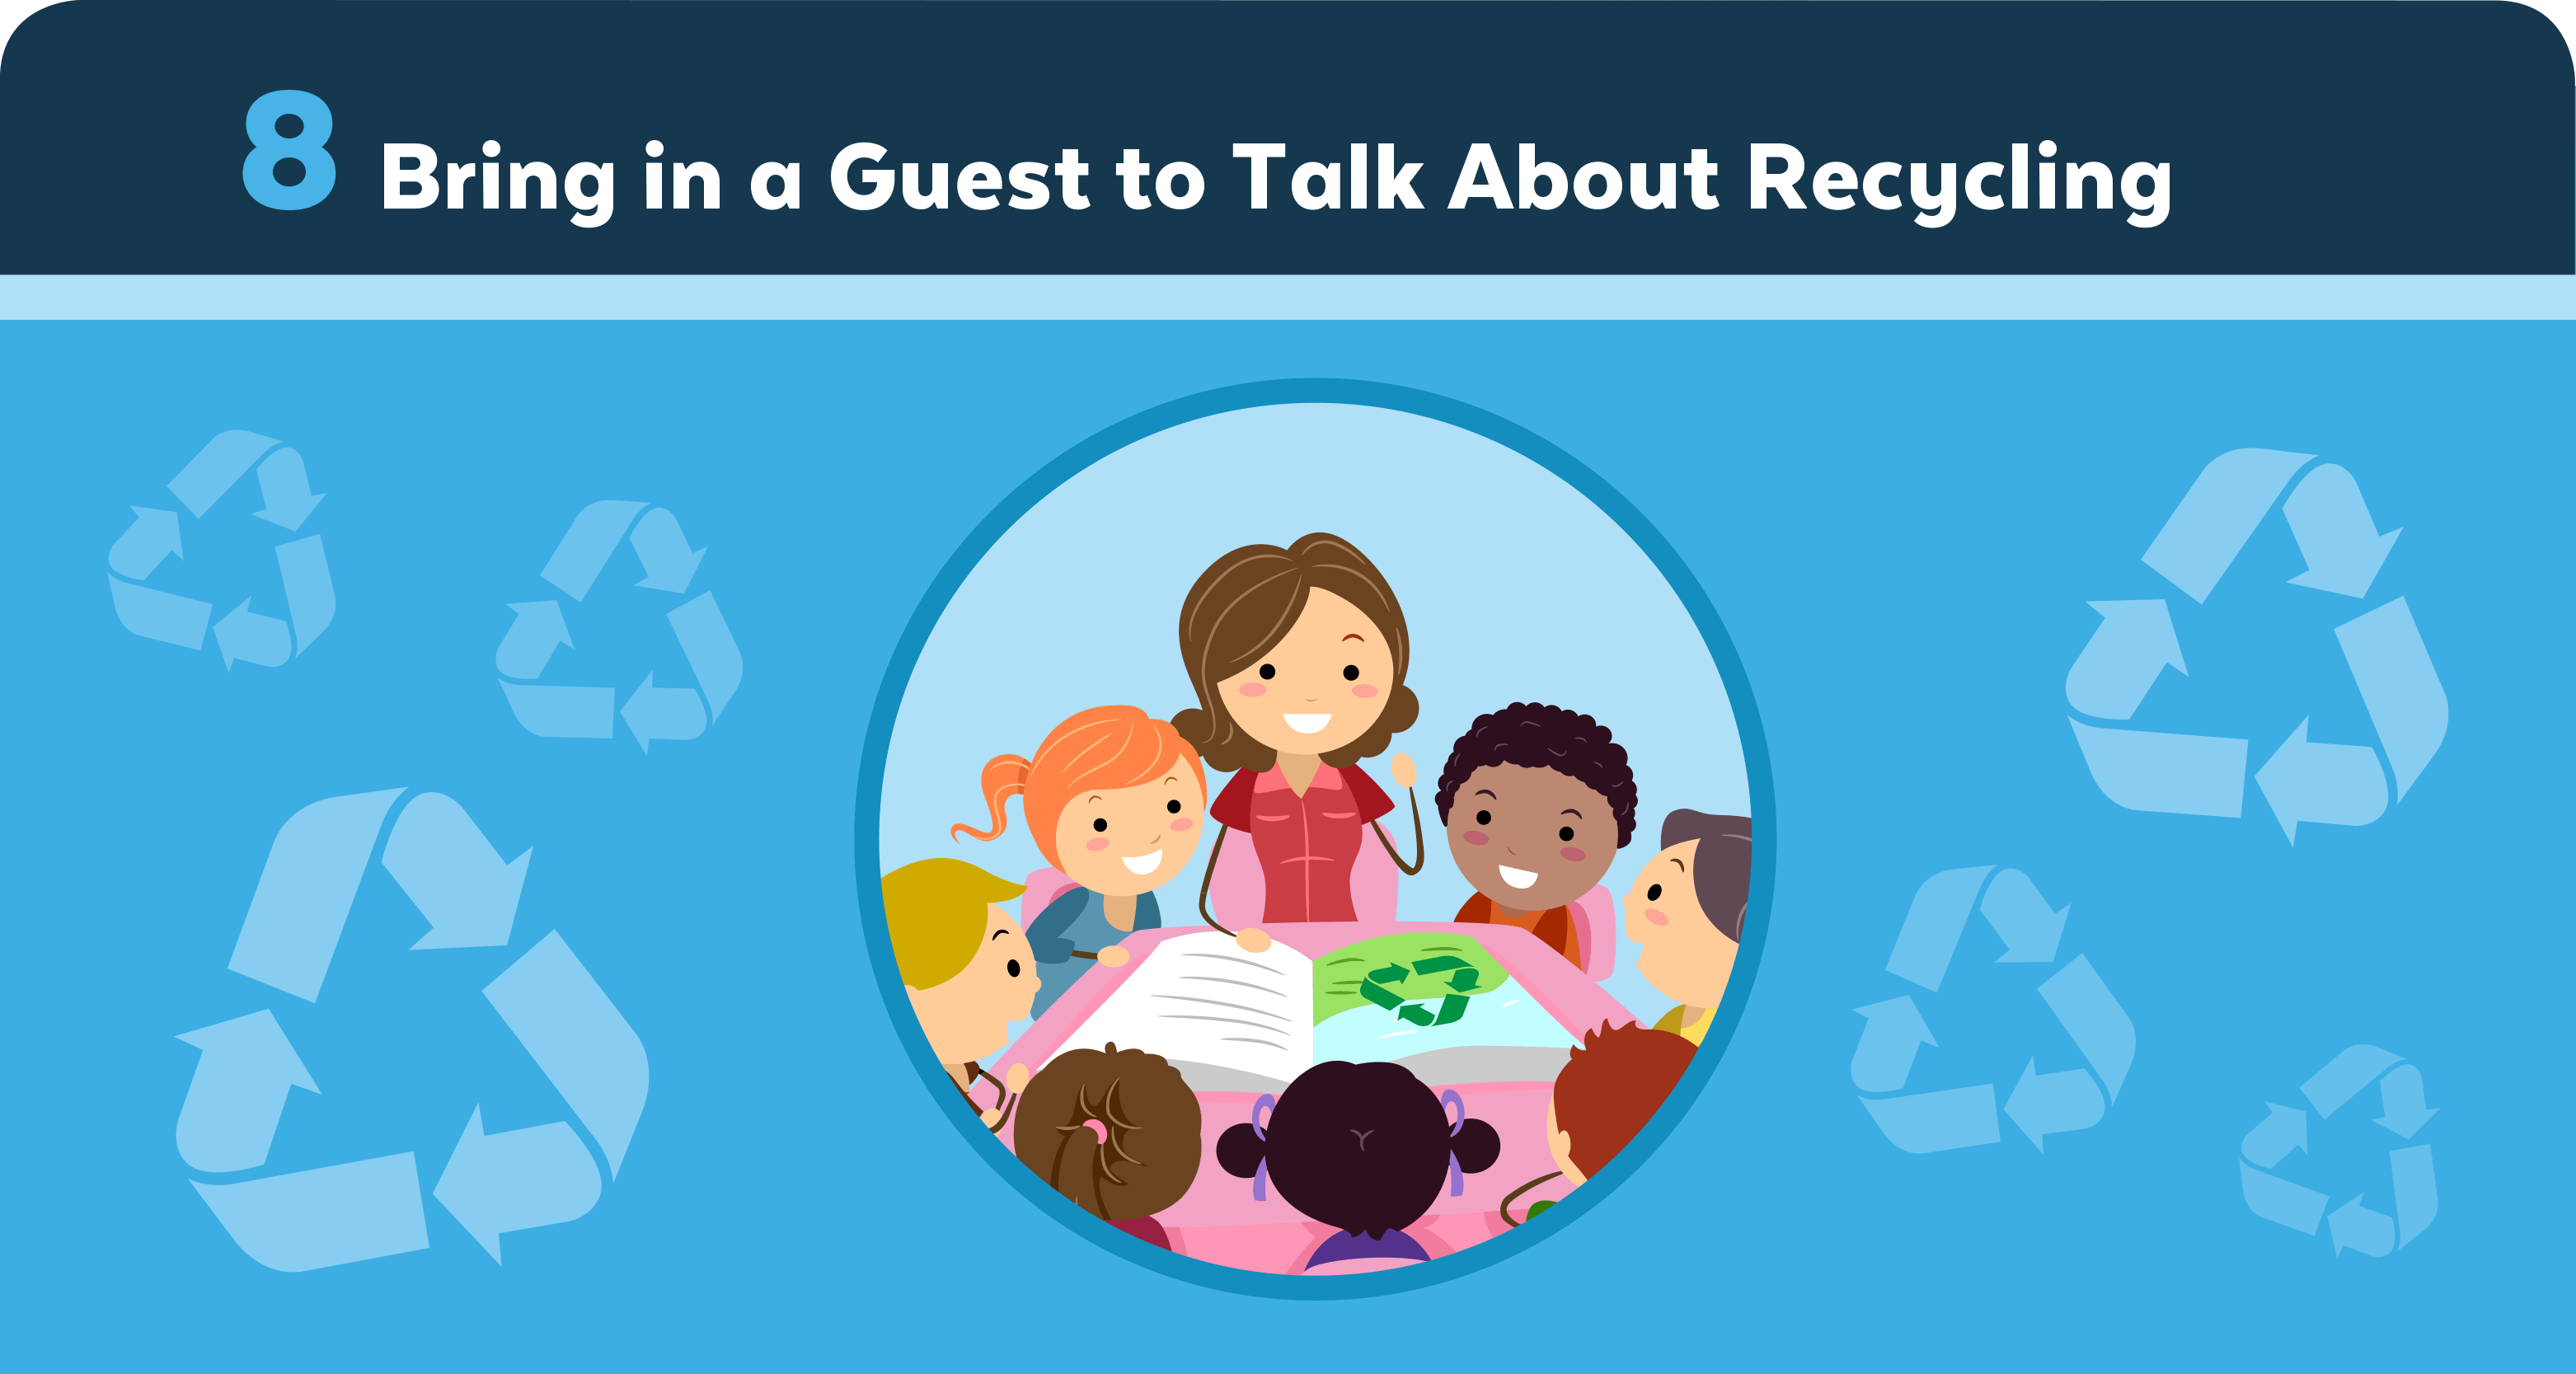 Bring in a Guest to Talk About Recycling